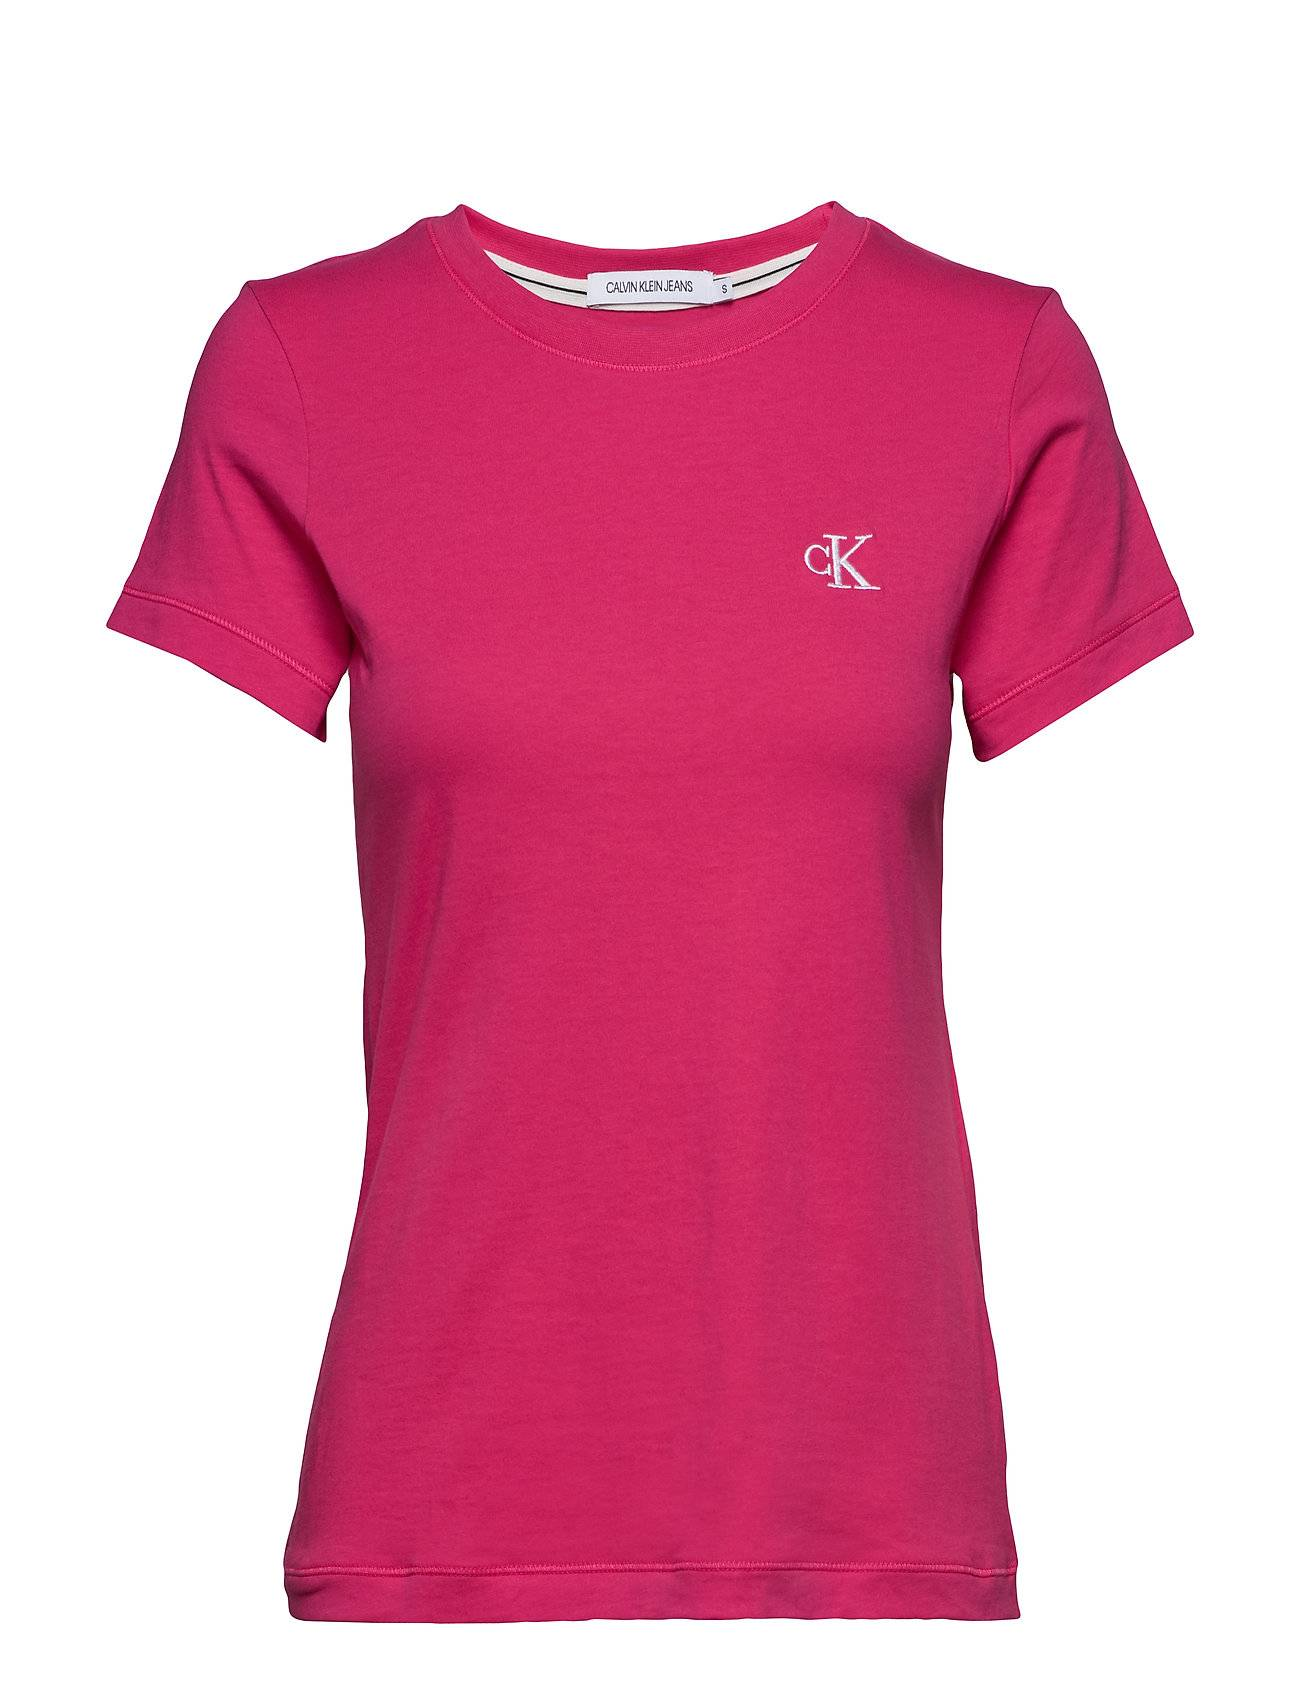 Image of Calvin Ck Embroidery Slim Tee T-shirts & Tops Short-sleeved Vaaleanpunainen Calvin Klein Jeans